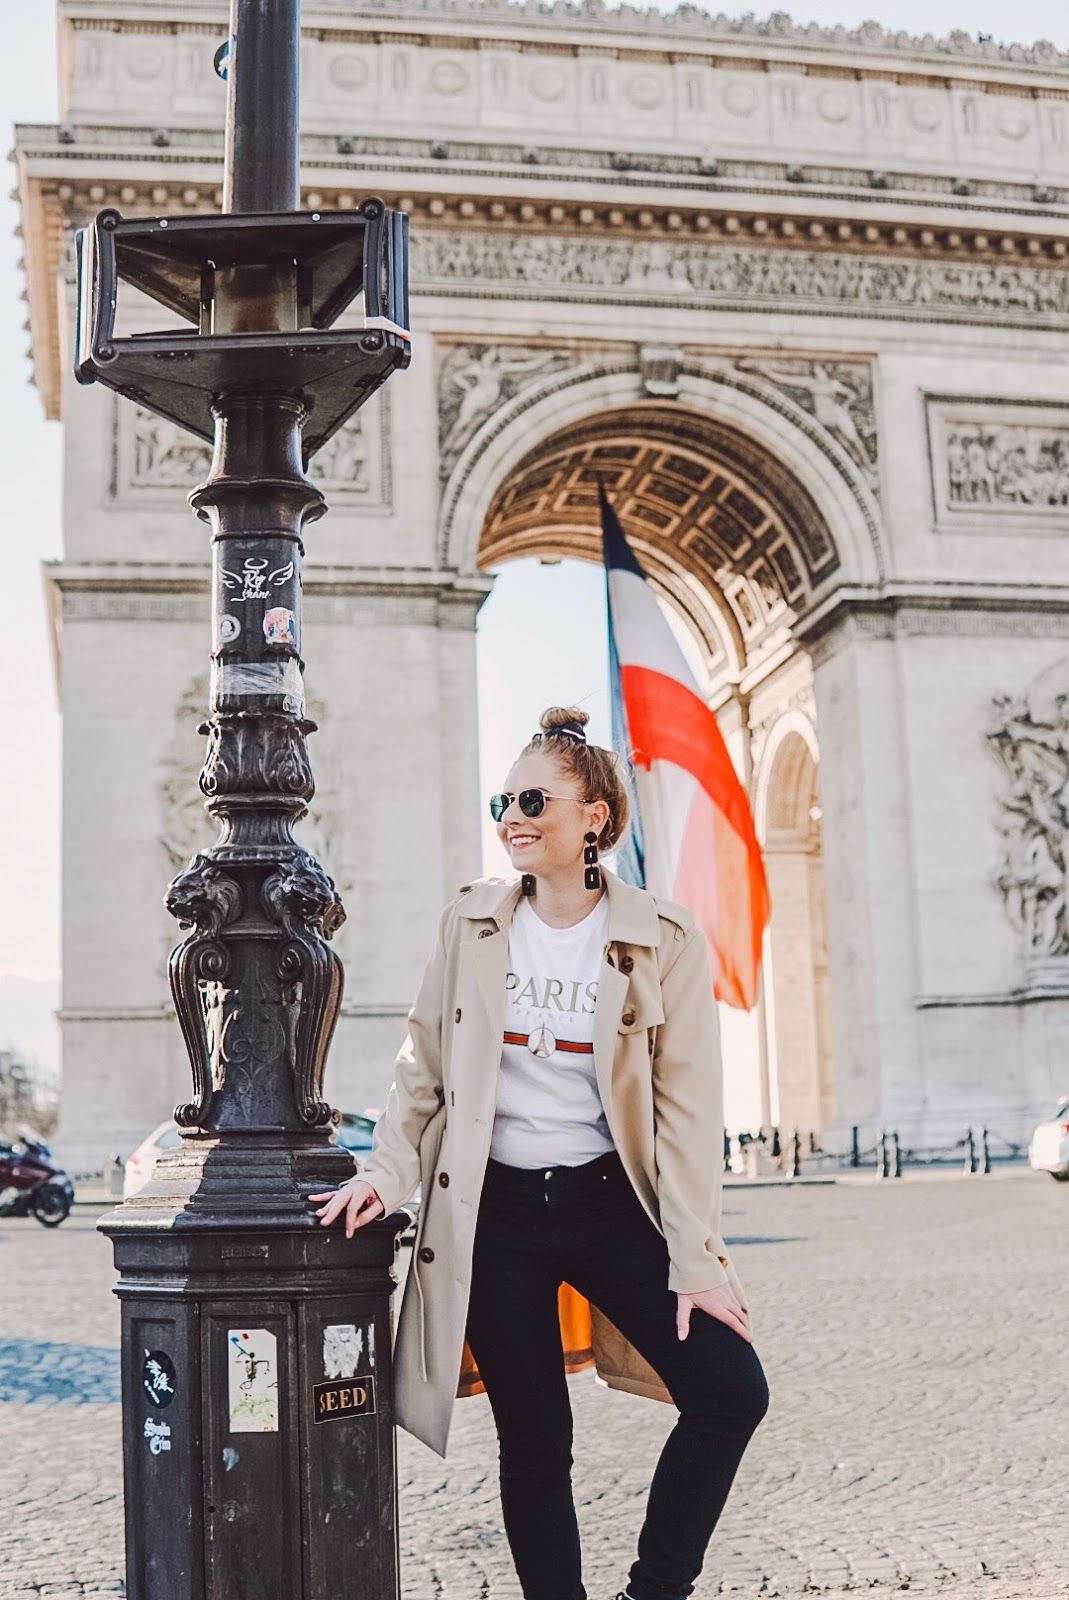 amanda burrows standing in front of the arc de triomphe paris france wearing a tan trench coat from h&m in europe